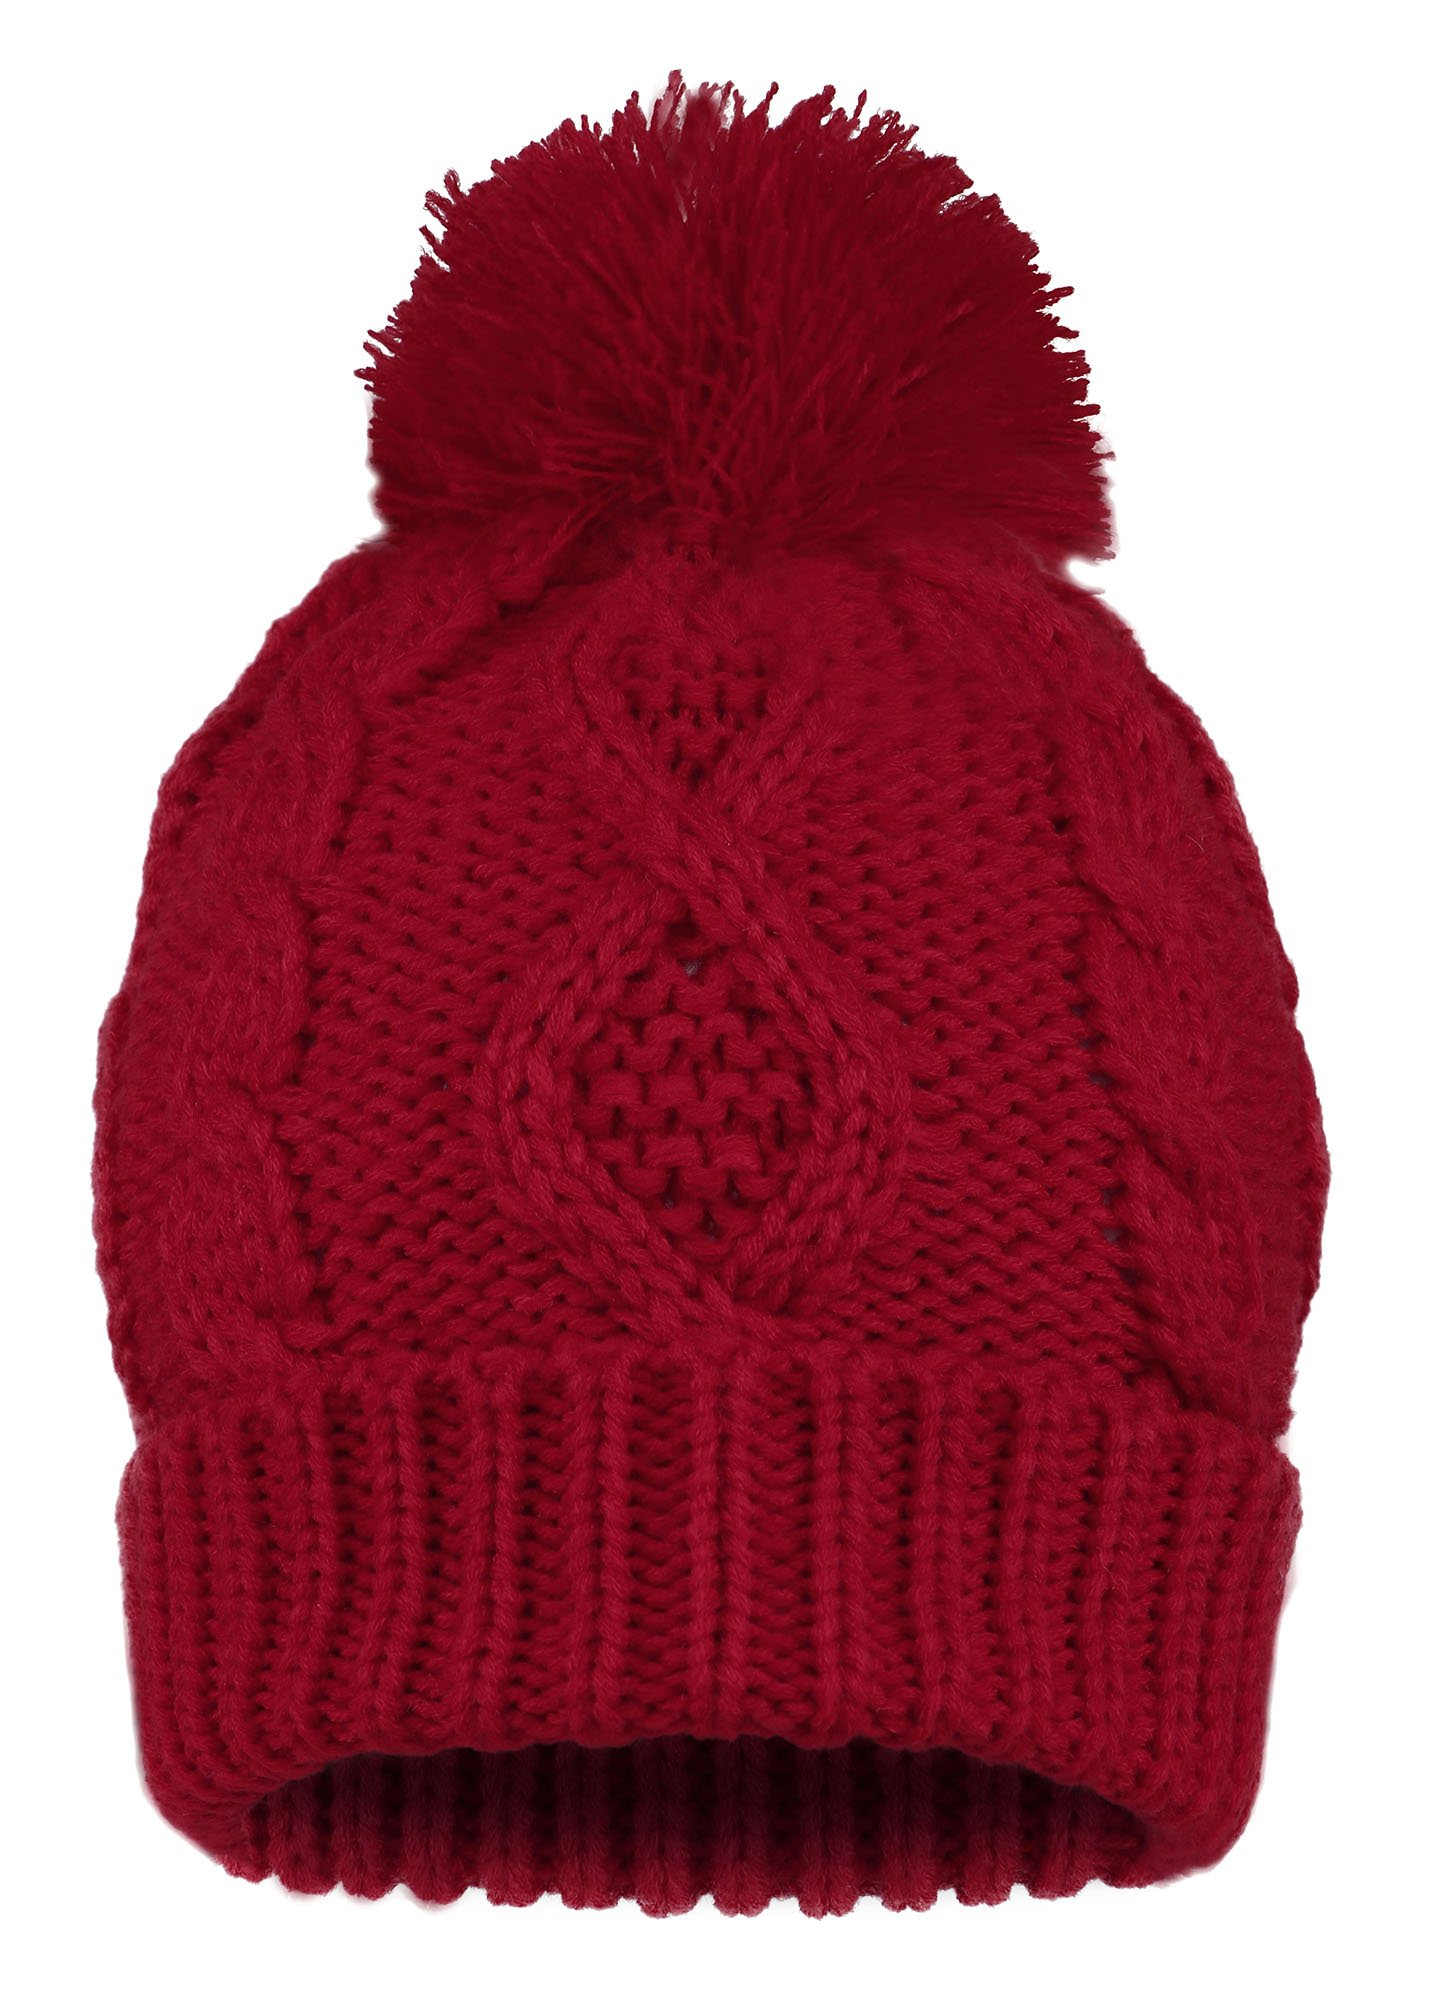 ANDORRA - 3 in 1 - Soft Warm Thick Cable Hat Scarf & Gloves Winter Set, Red by Andorra (Image #4)